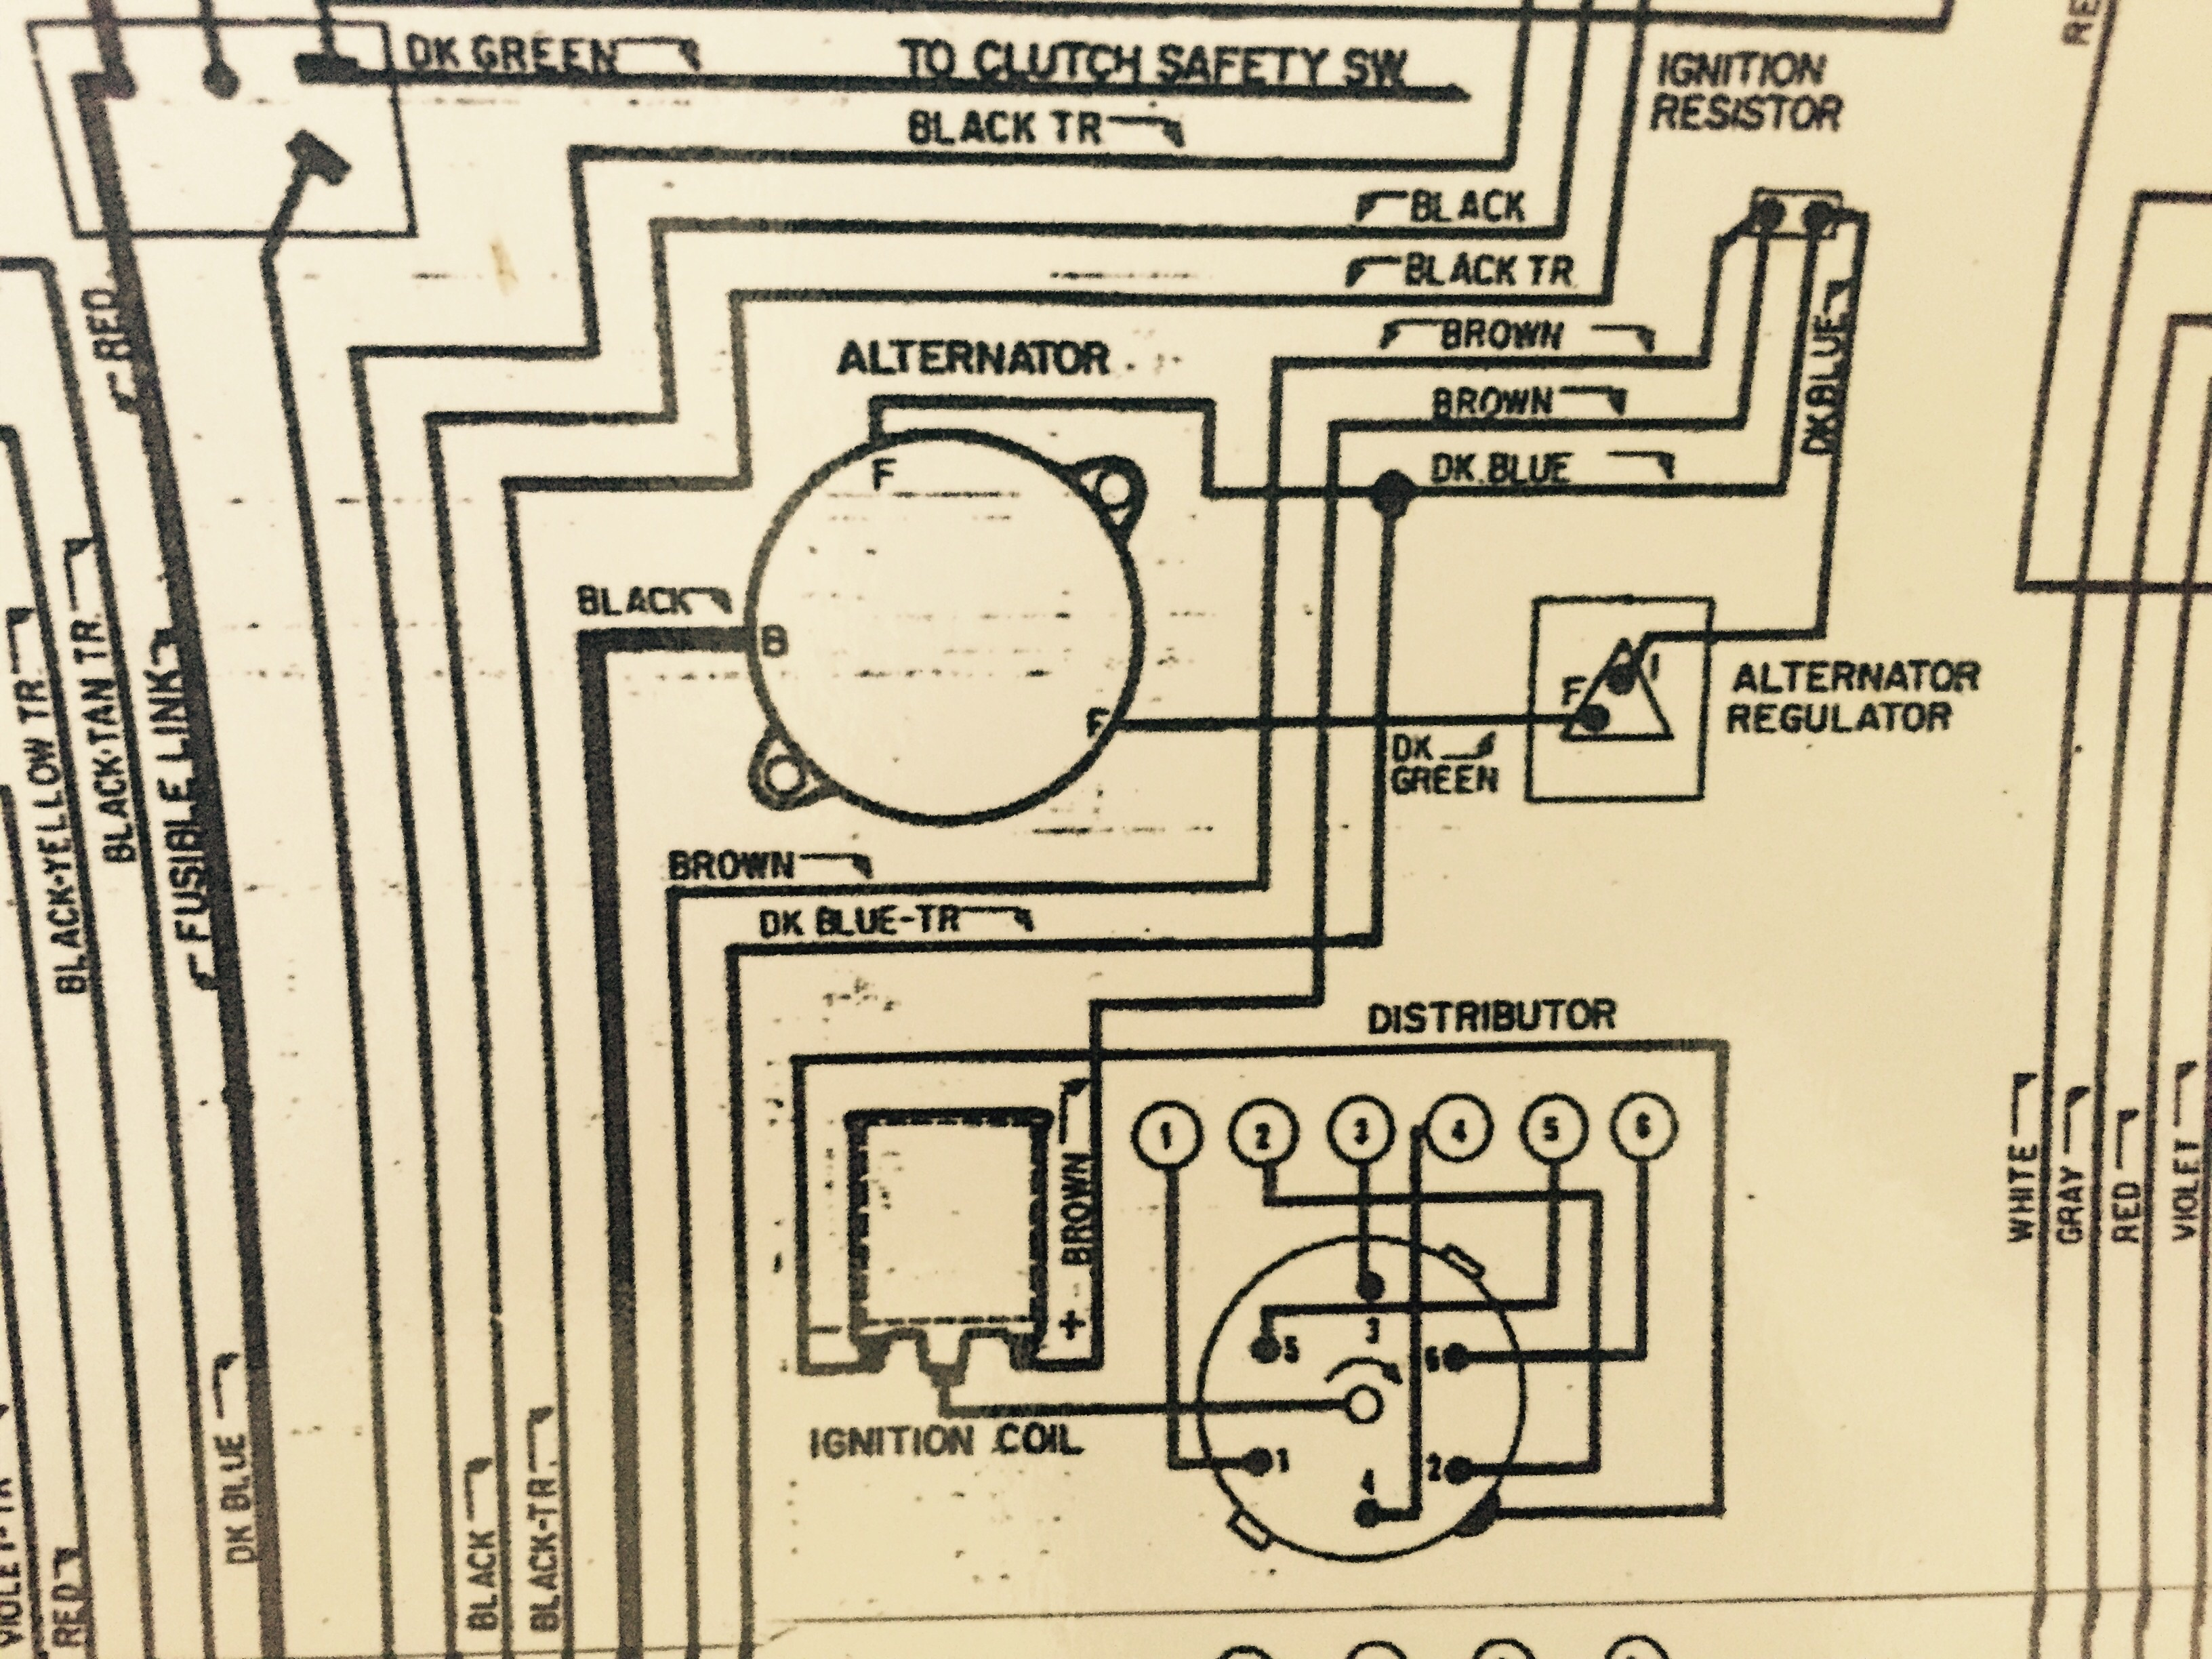 Ecore Coil Wiring Gm Opinions About Diagram Ls1 Harness Hei Conversion Help Page 2 For A Bodies Only Mopar Forum Rh Forabodiesonly Com Ignition Chevy 350